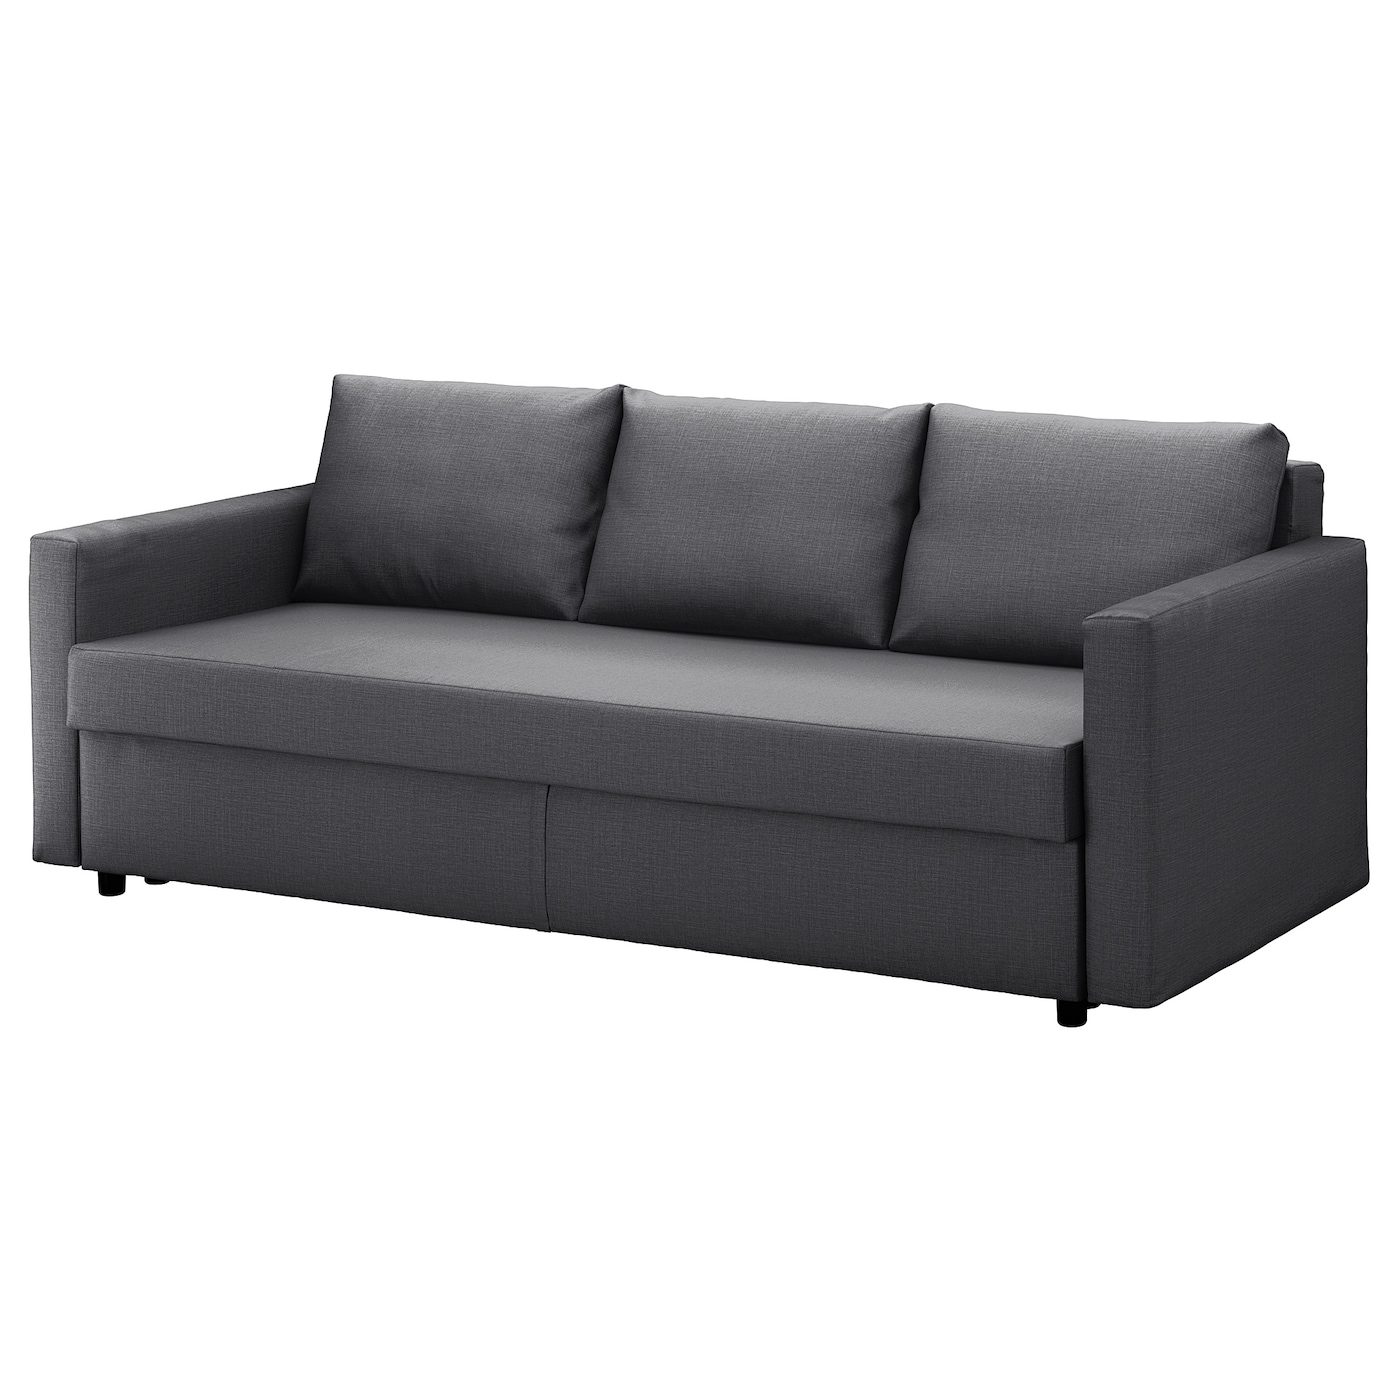 Friheten Sofa Bed Skiftebo Dark Gray